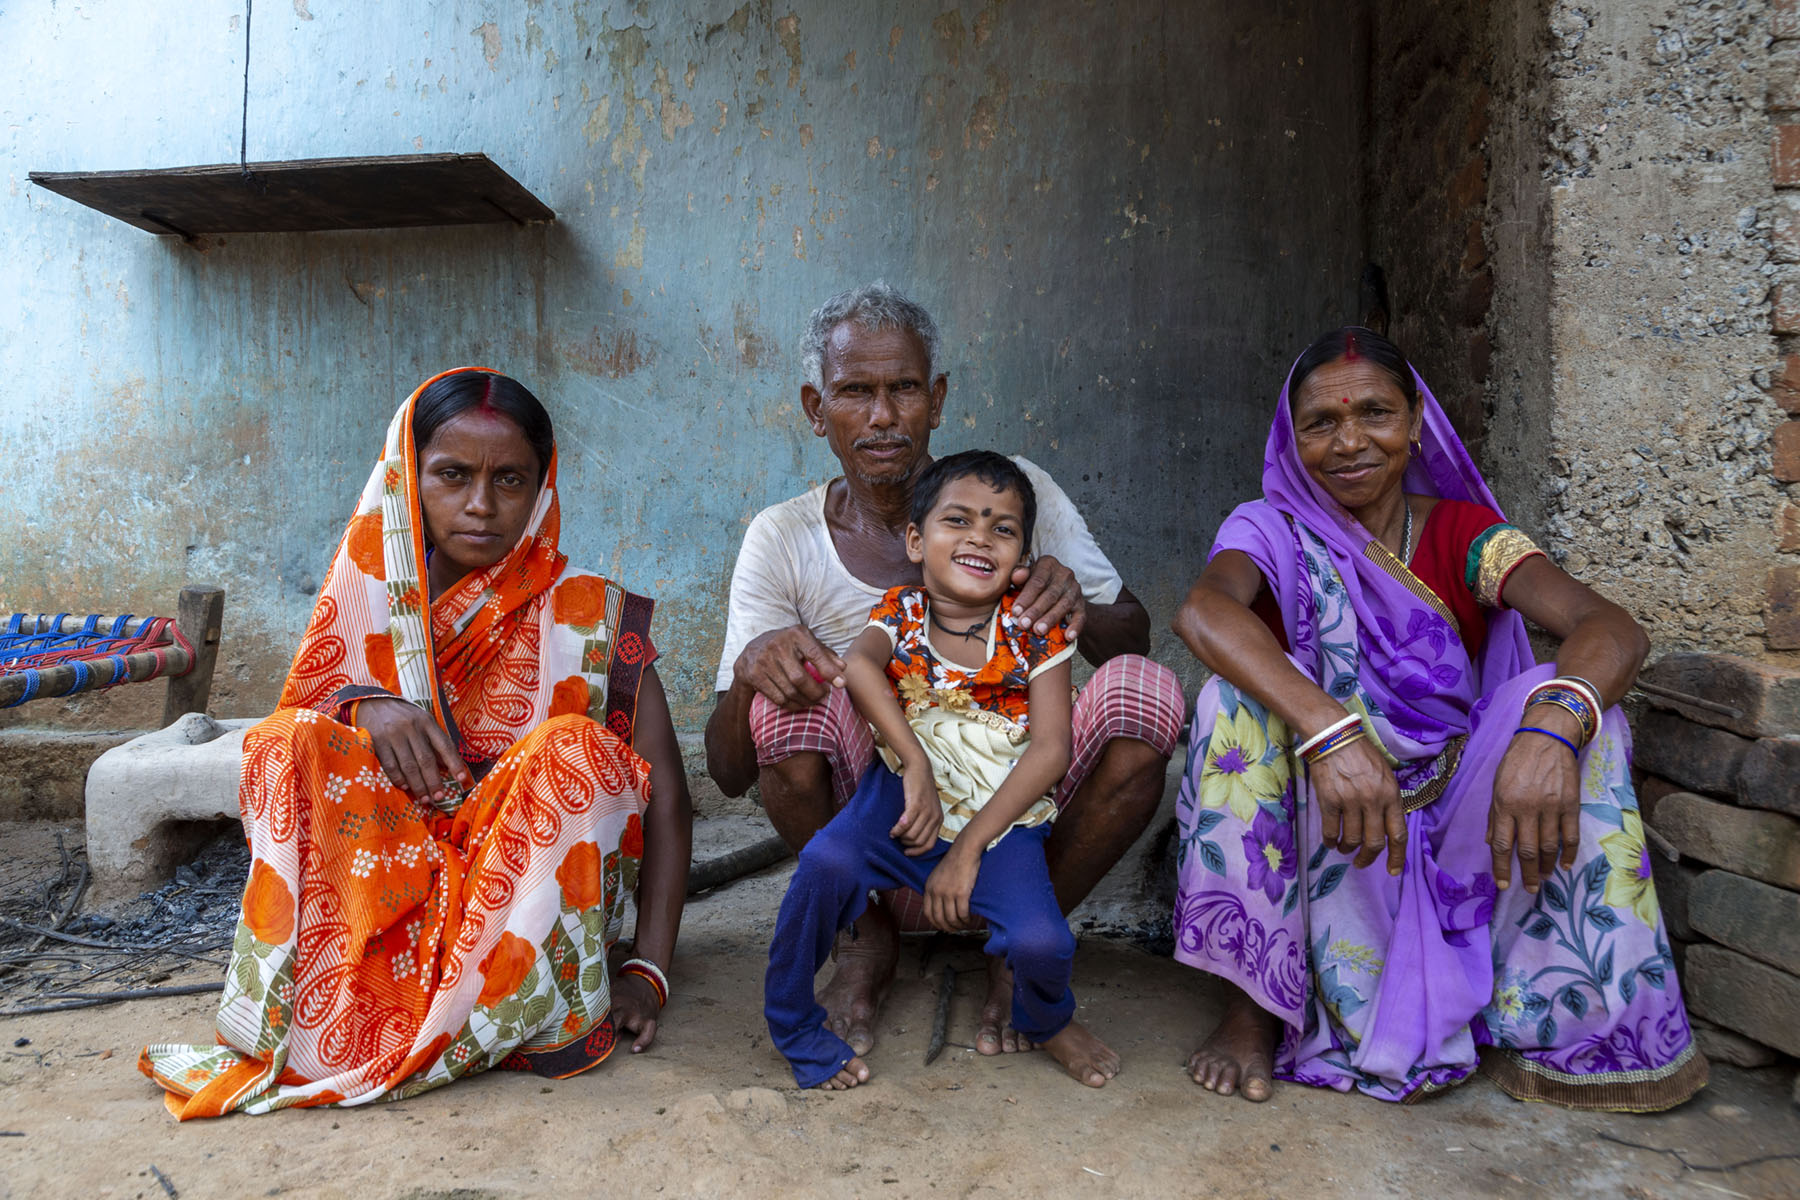 Squatting on the floor in a row and posing for the camera are — from left to right — Manisha's mother Savita Devi (29), grandfather Kailash Mahto (55) with Manisha in his lap, and her grandmother Minni Devi (50). Savita wears a sari in a mango design of bright orange on white. Her pallu is draped over her head. Kailash is in a banian and checked lungi. Manisha in her flower print dress and churidar, with a prominent black bindi on her forehead, nestles in her grandfather's lap, smiling broadly. Minni Devi wears a bright violet sari in a print of violet and white flowers with blue leaves.